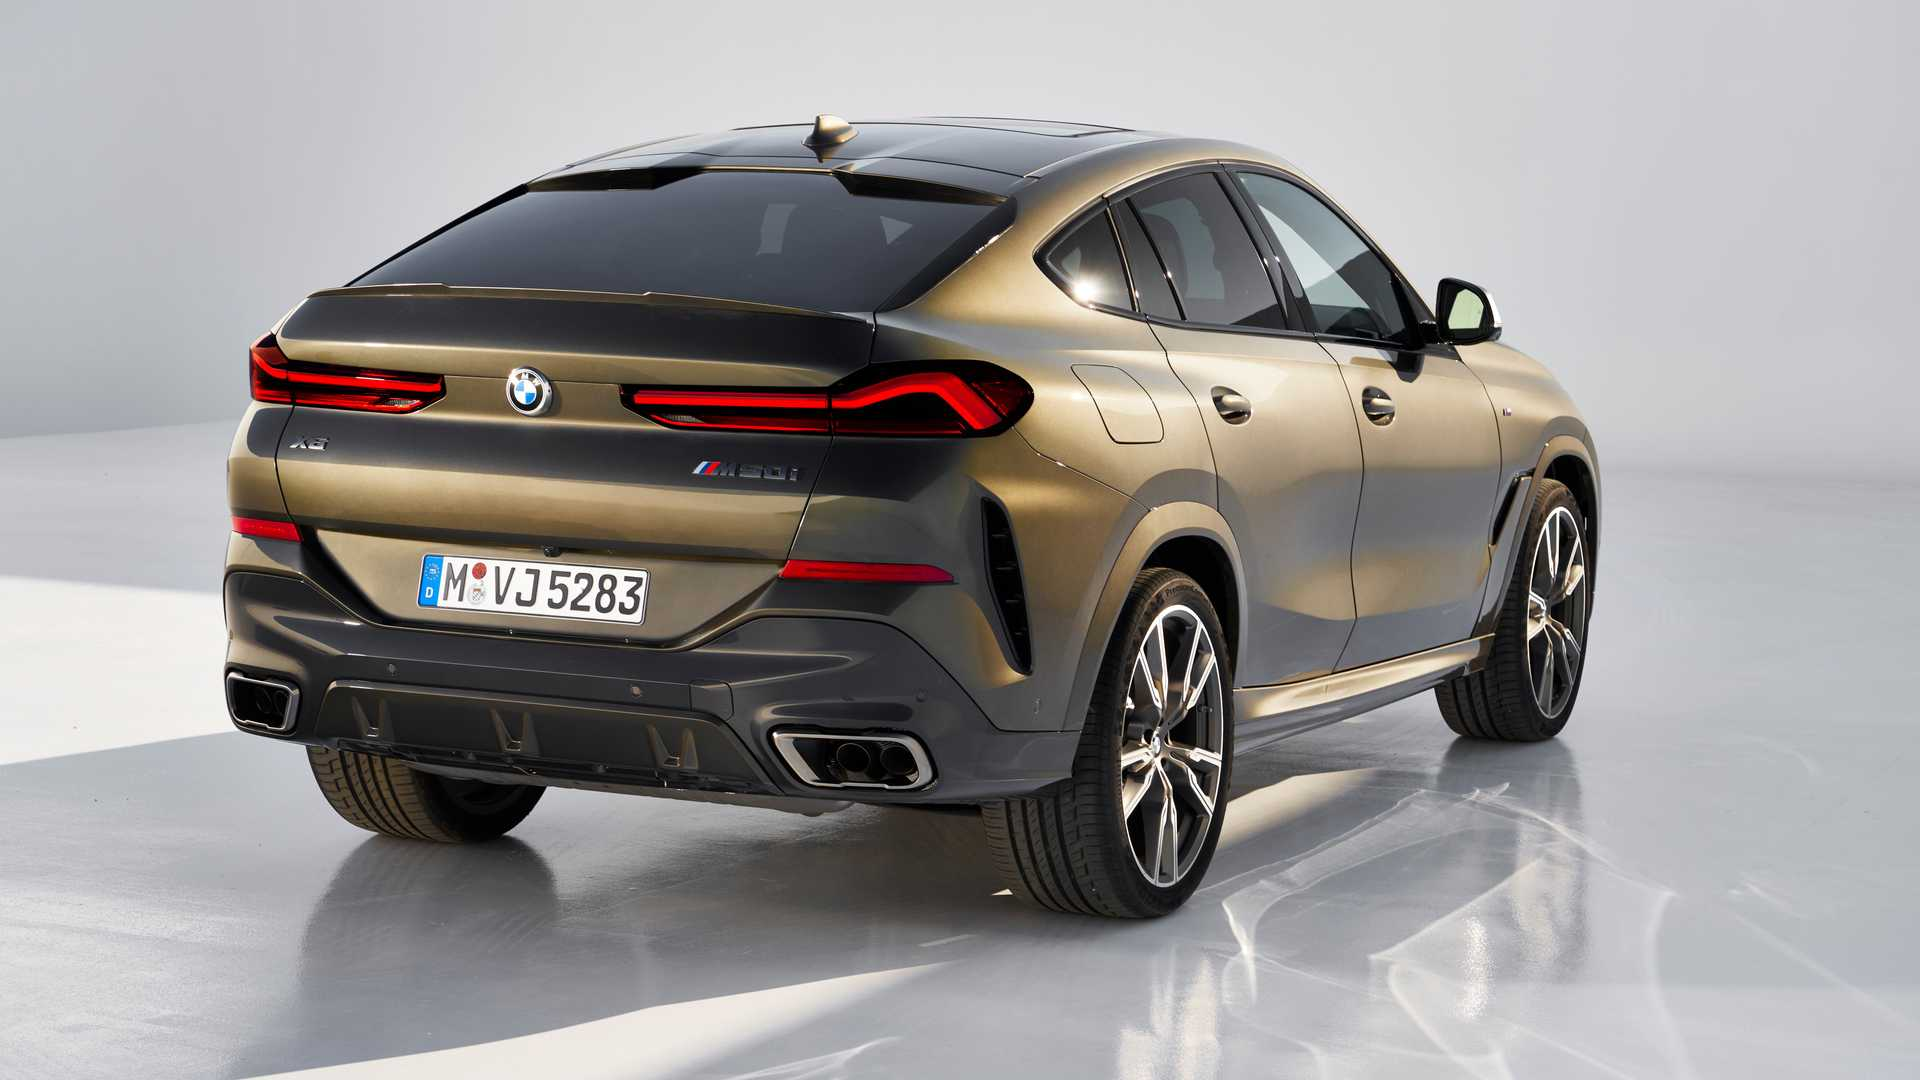 2020 bmw x6 officially revealed  available with illuminated kidney grille